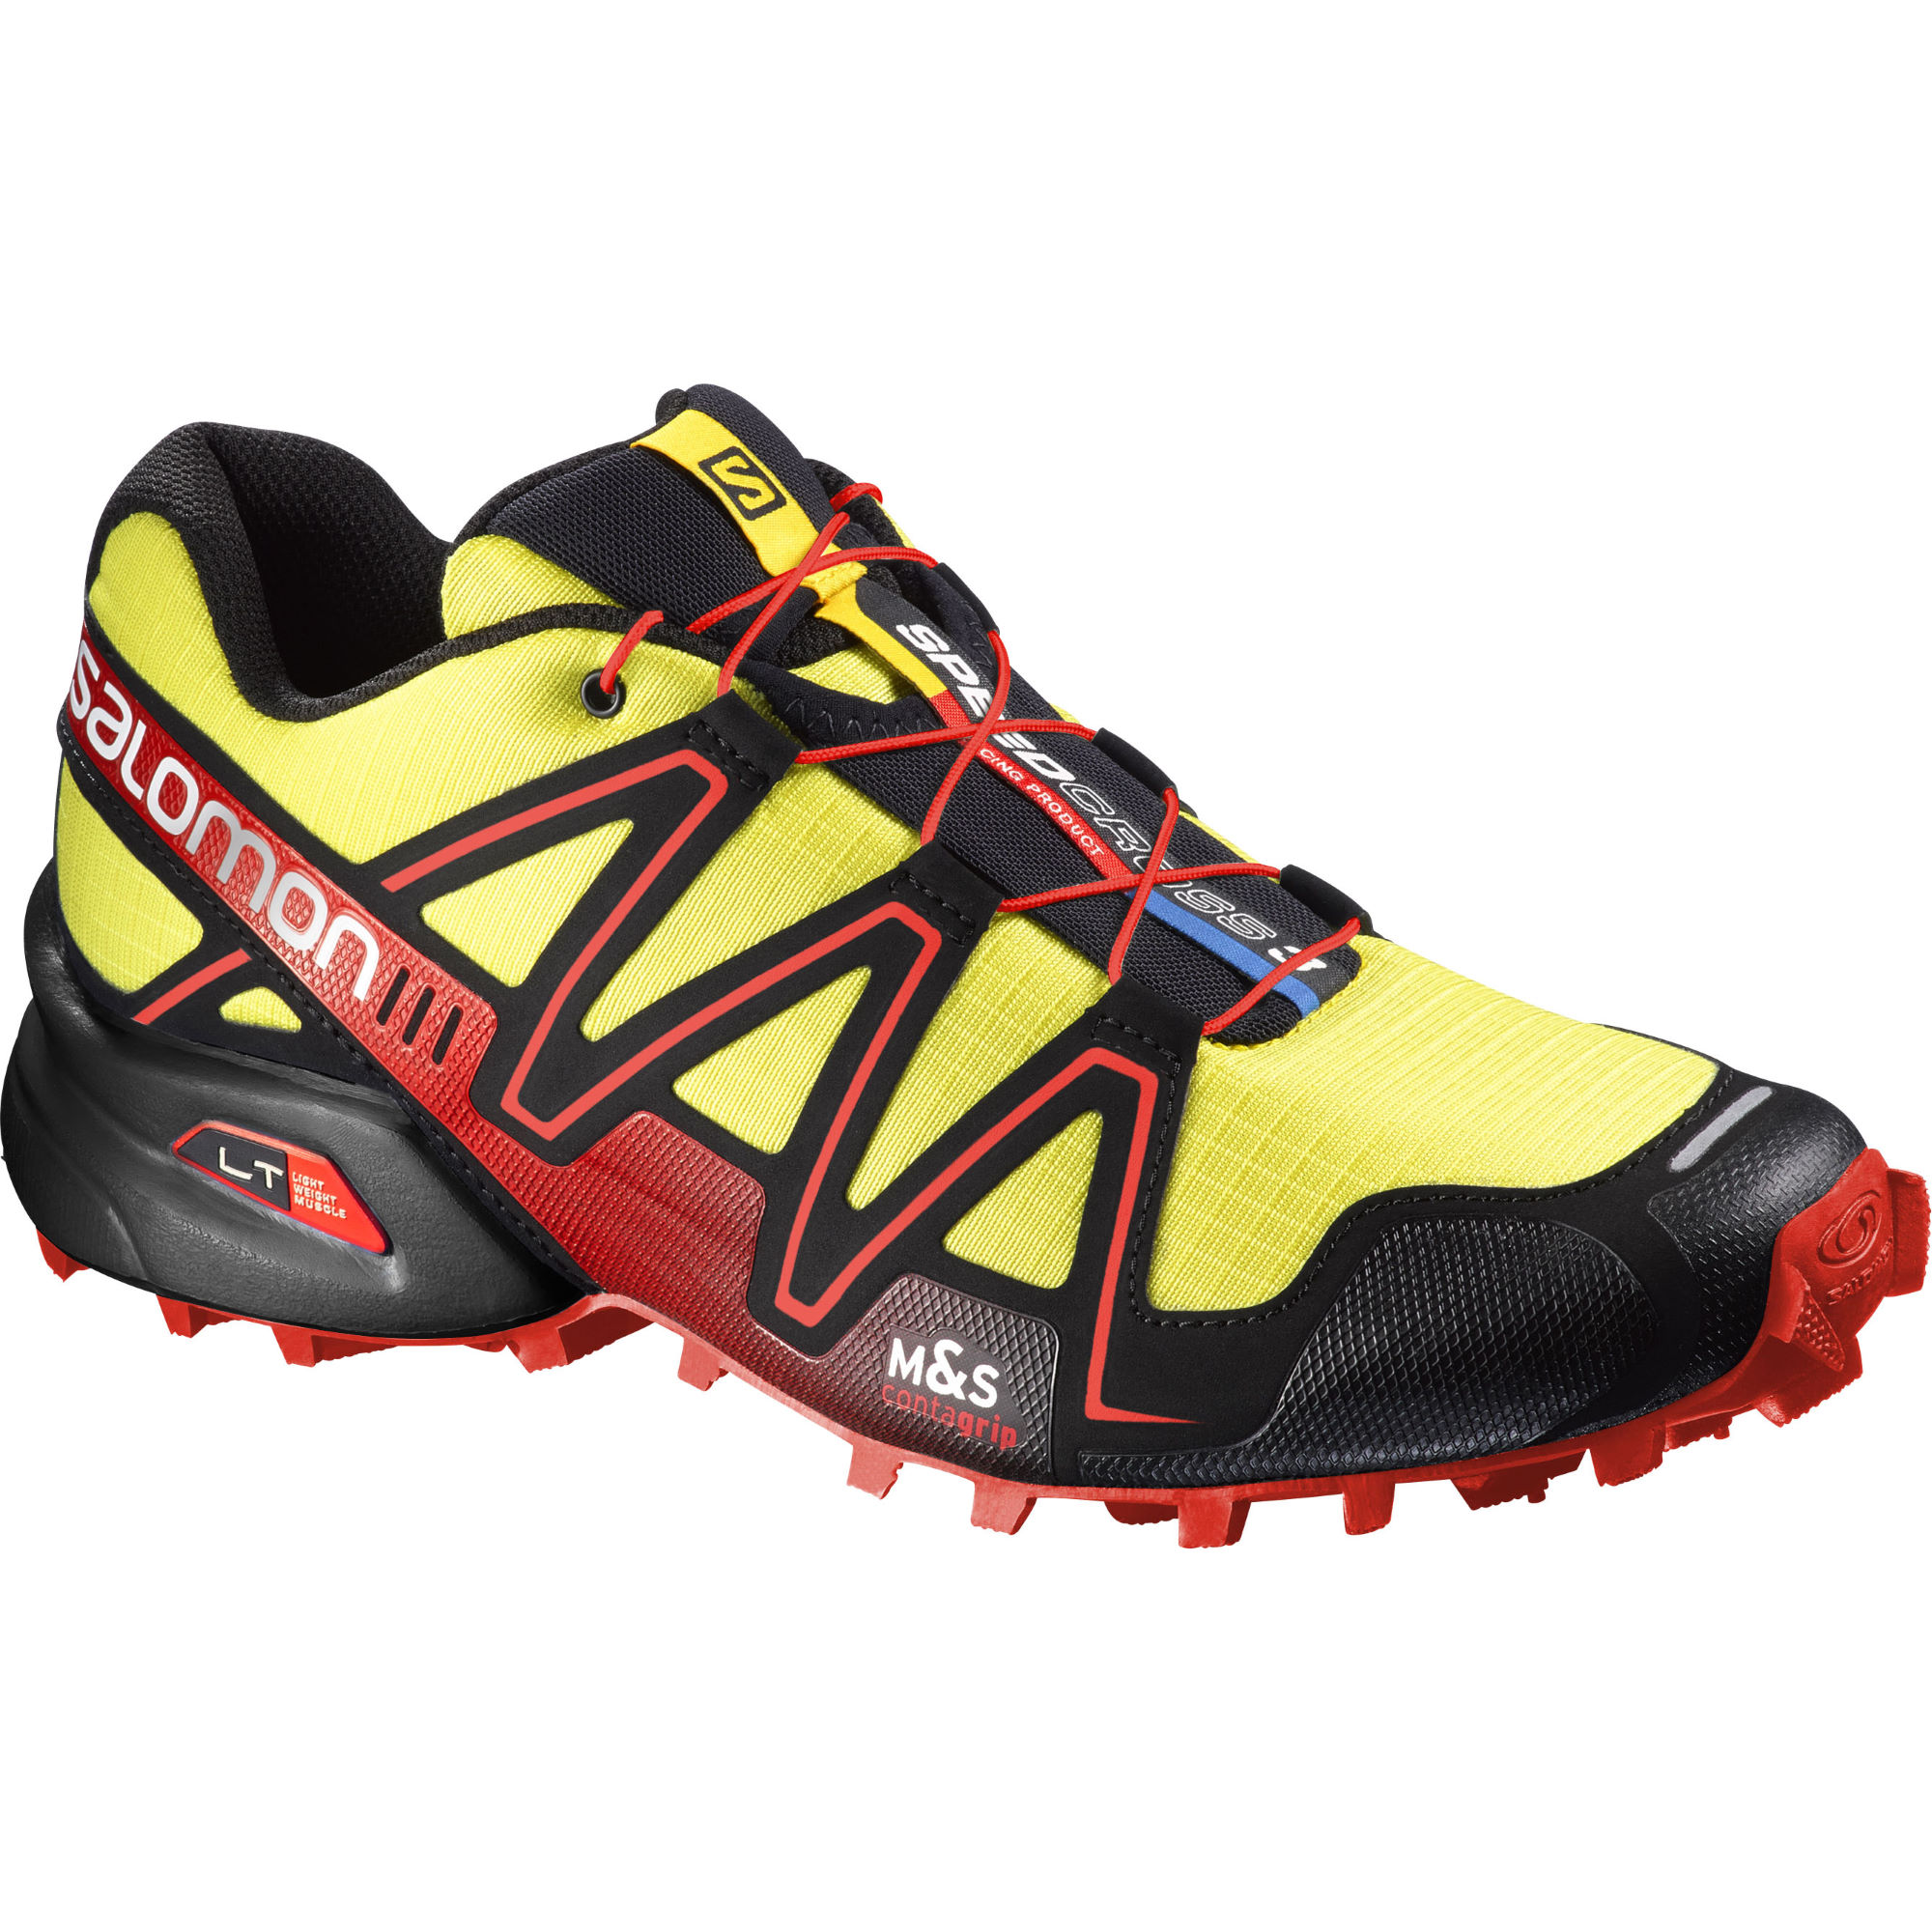 Top Speed Running Shoes